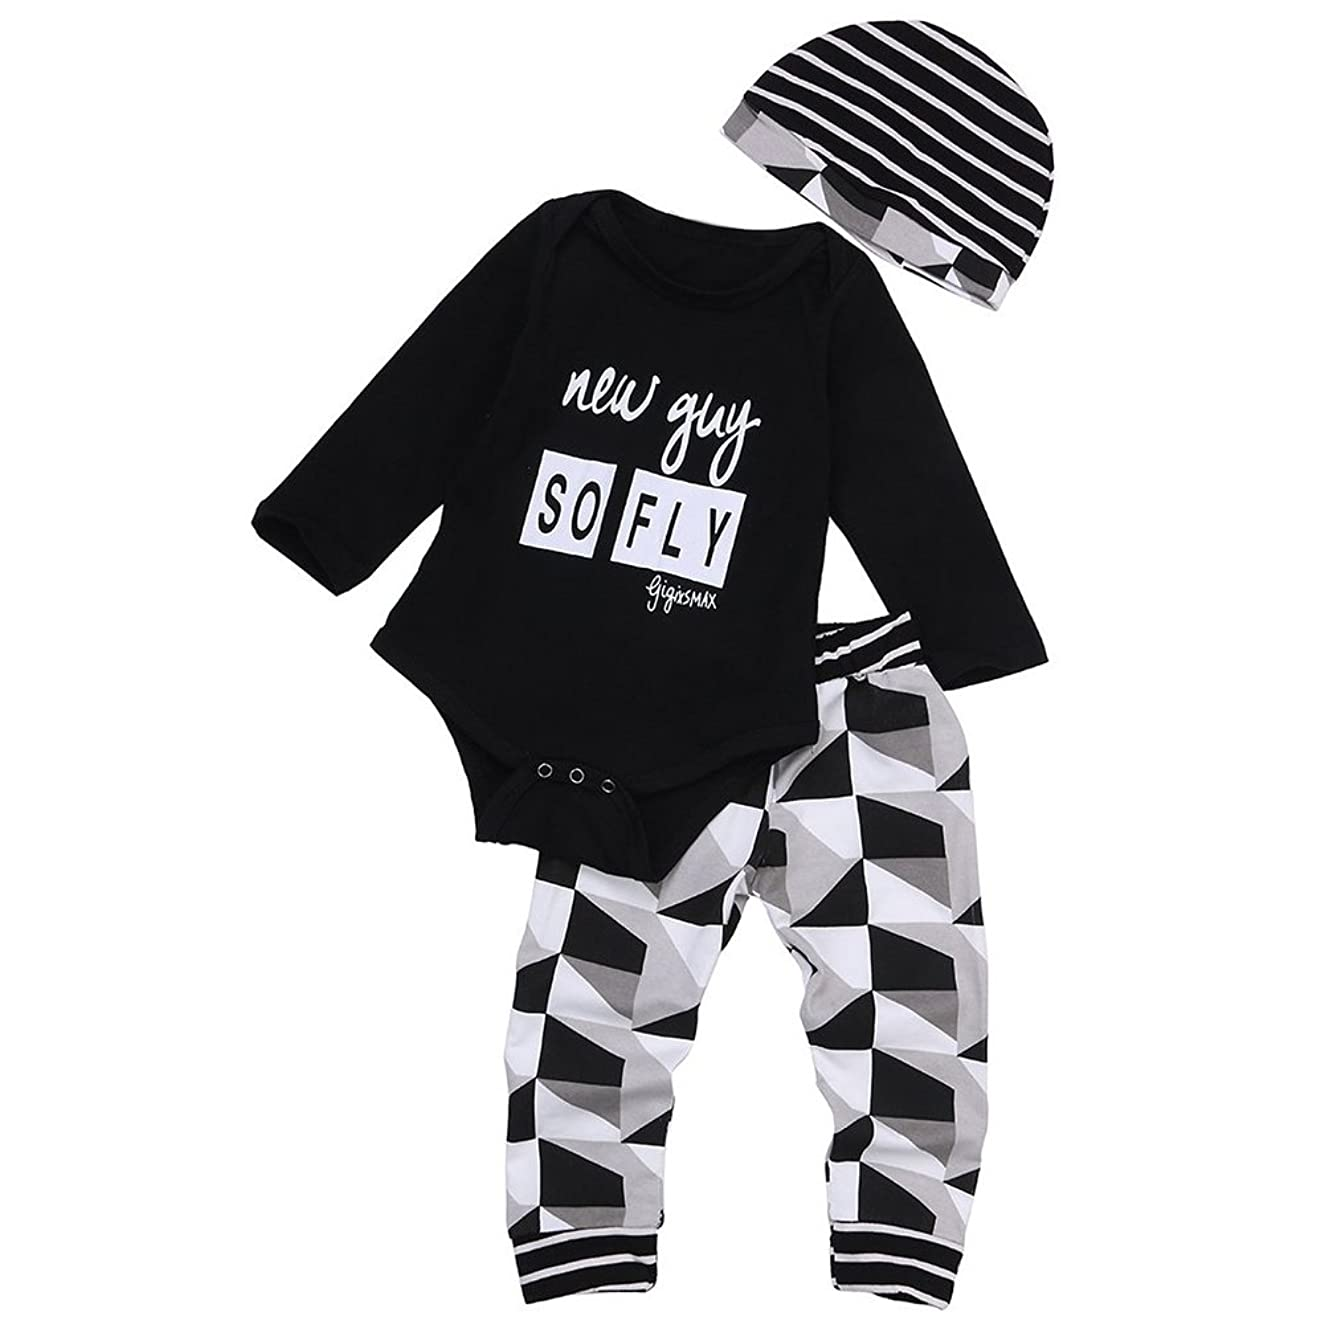 MIOIM 3pcs Baby Boys Girls Rompers Bodysuit+Long Pants+Hat Outfits Clothing Set